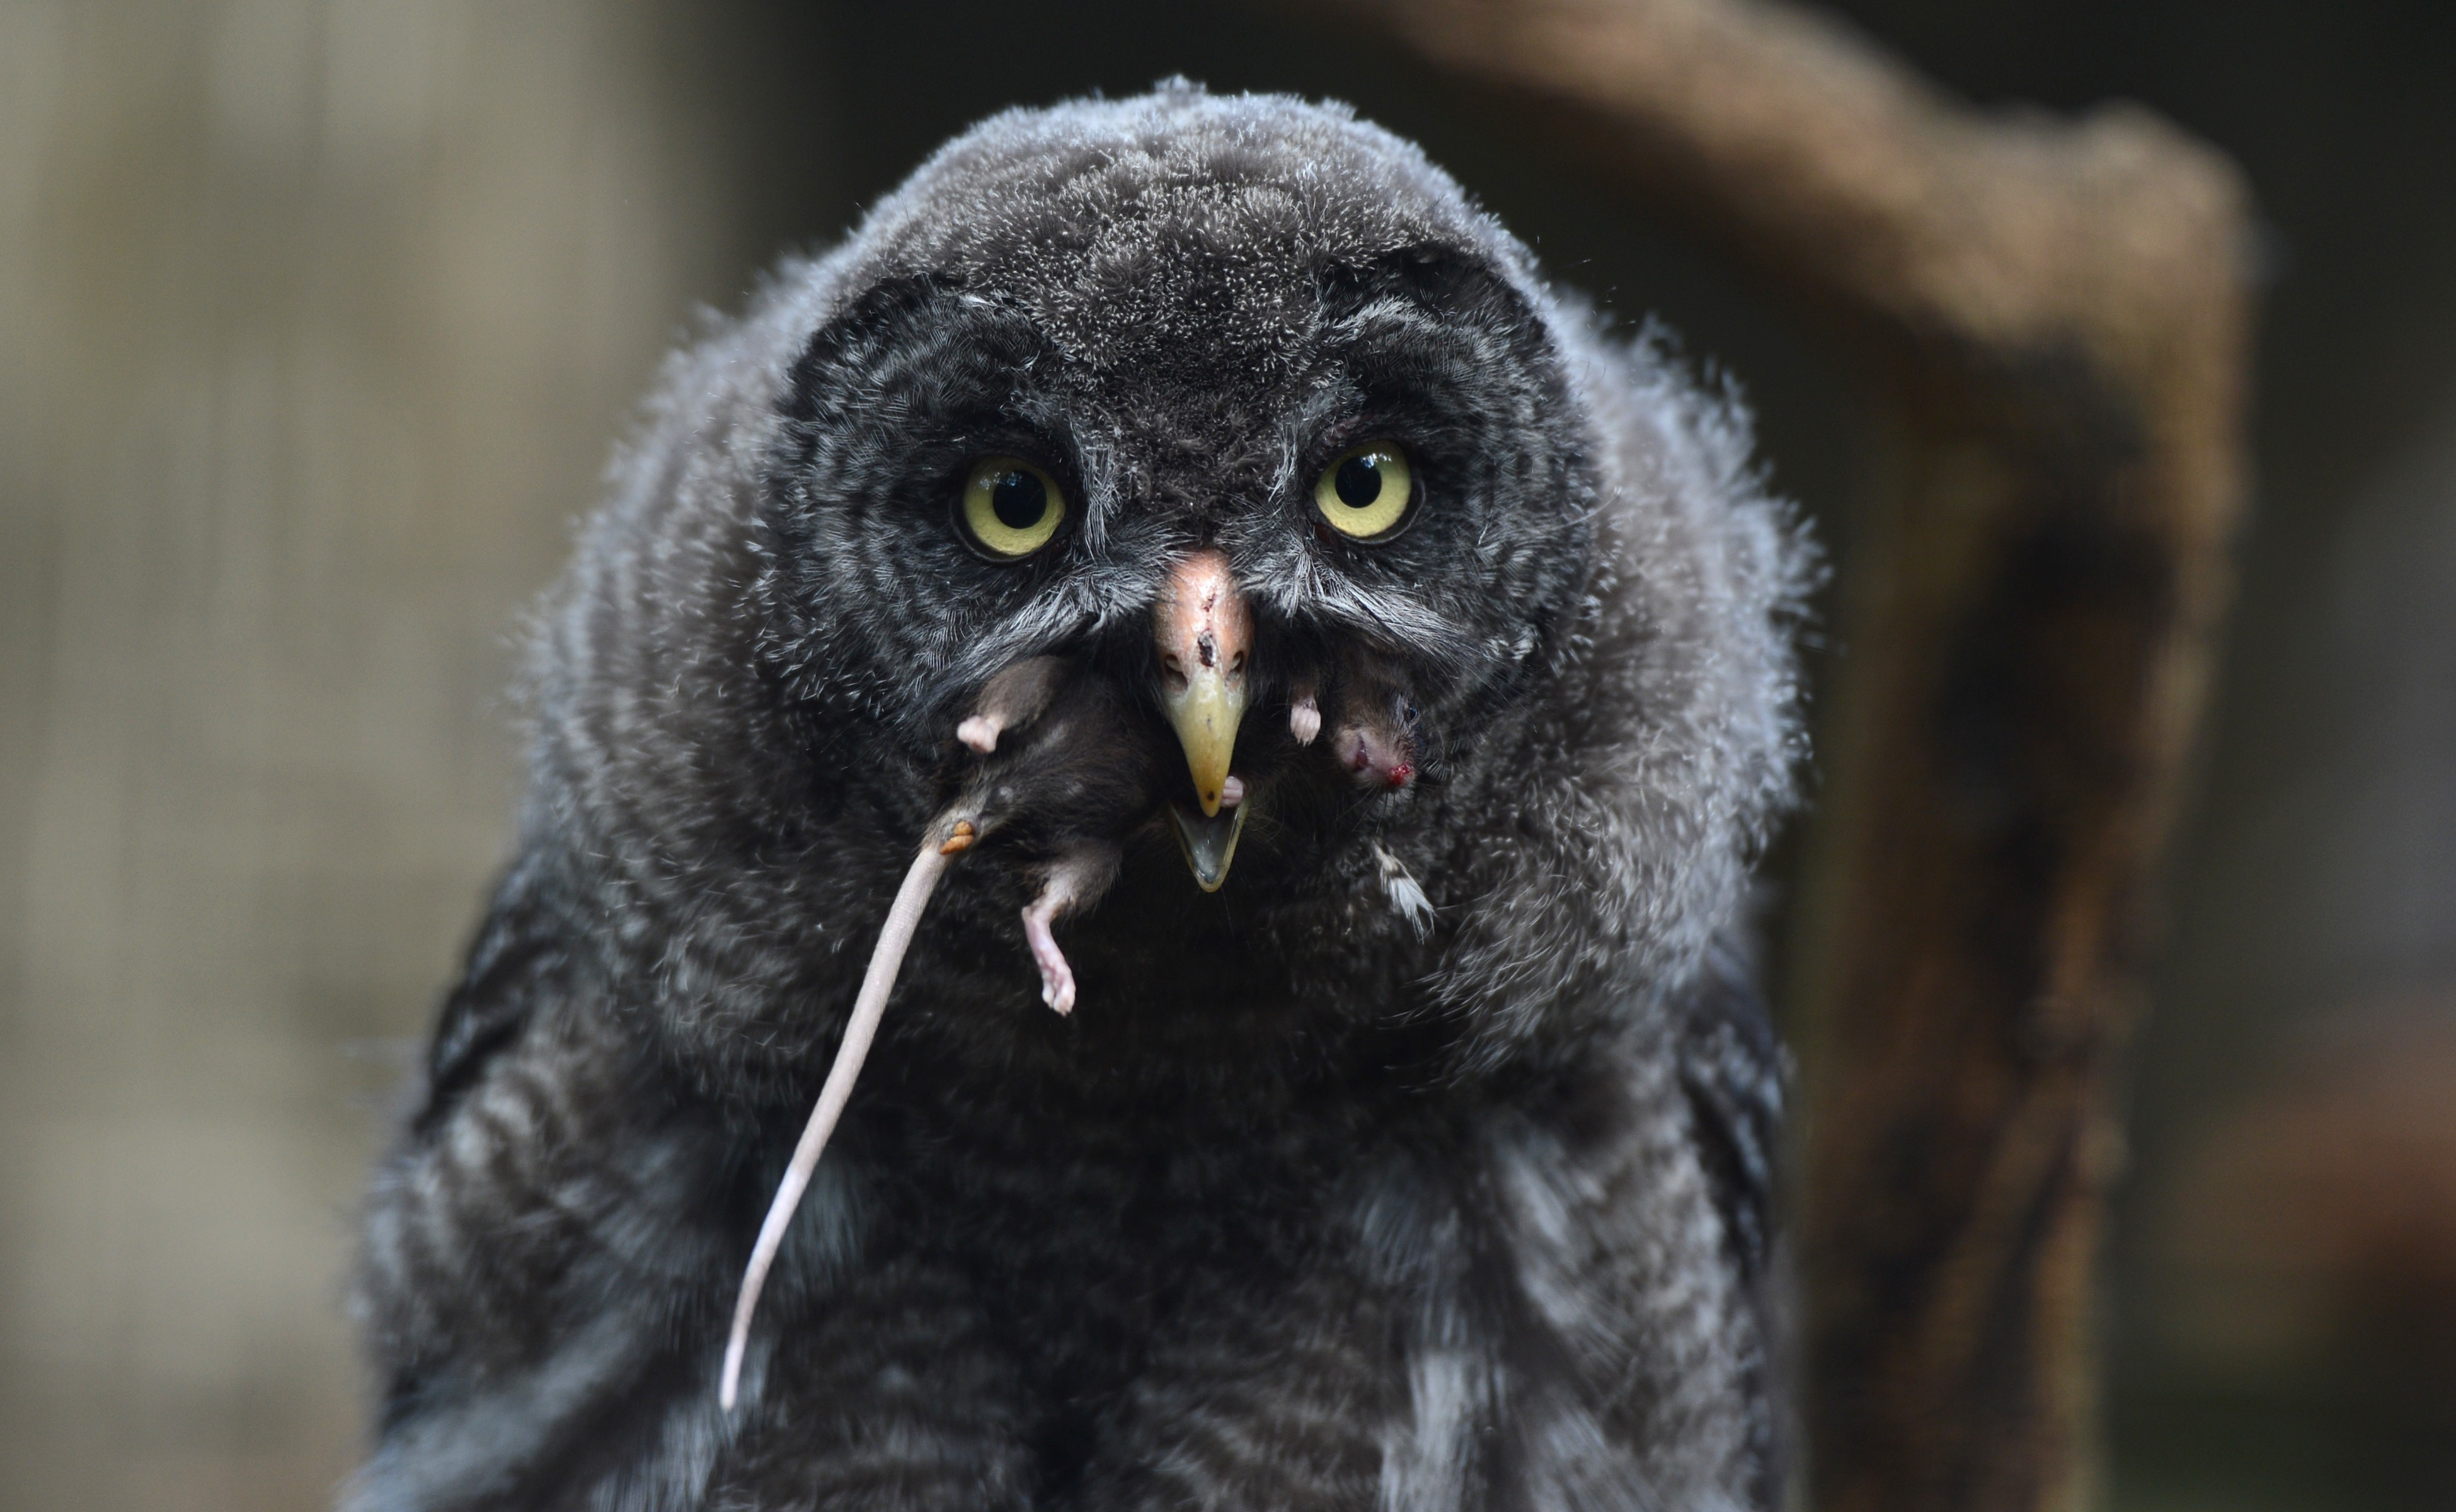 owl catching the mouse - photo #6